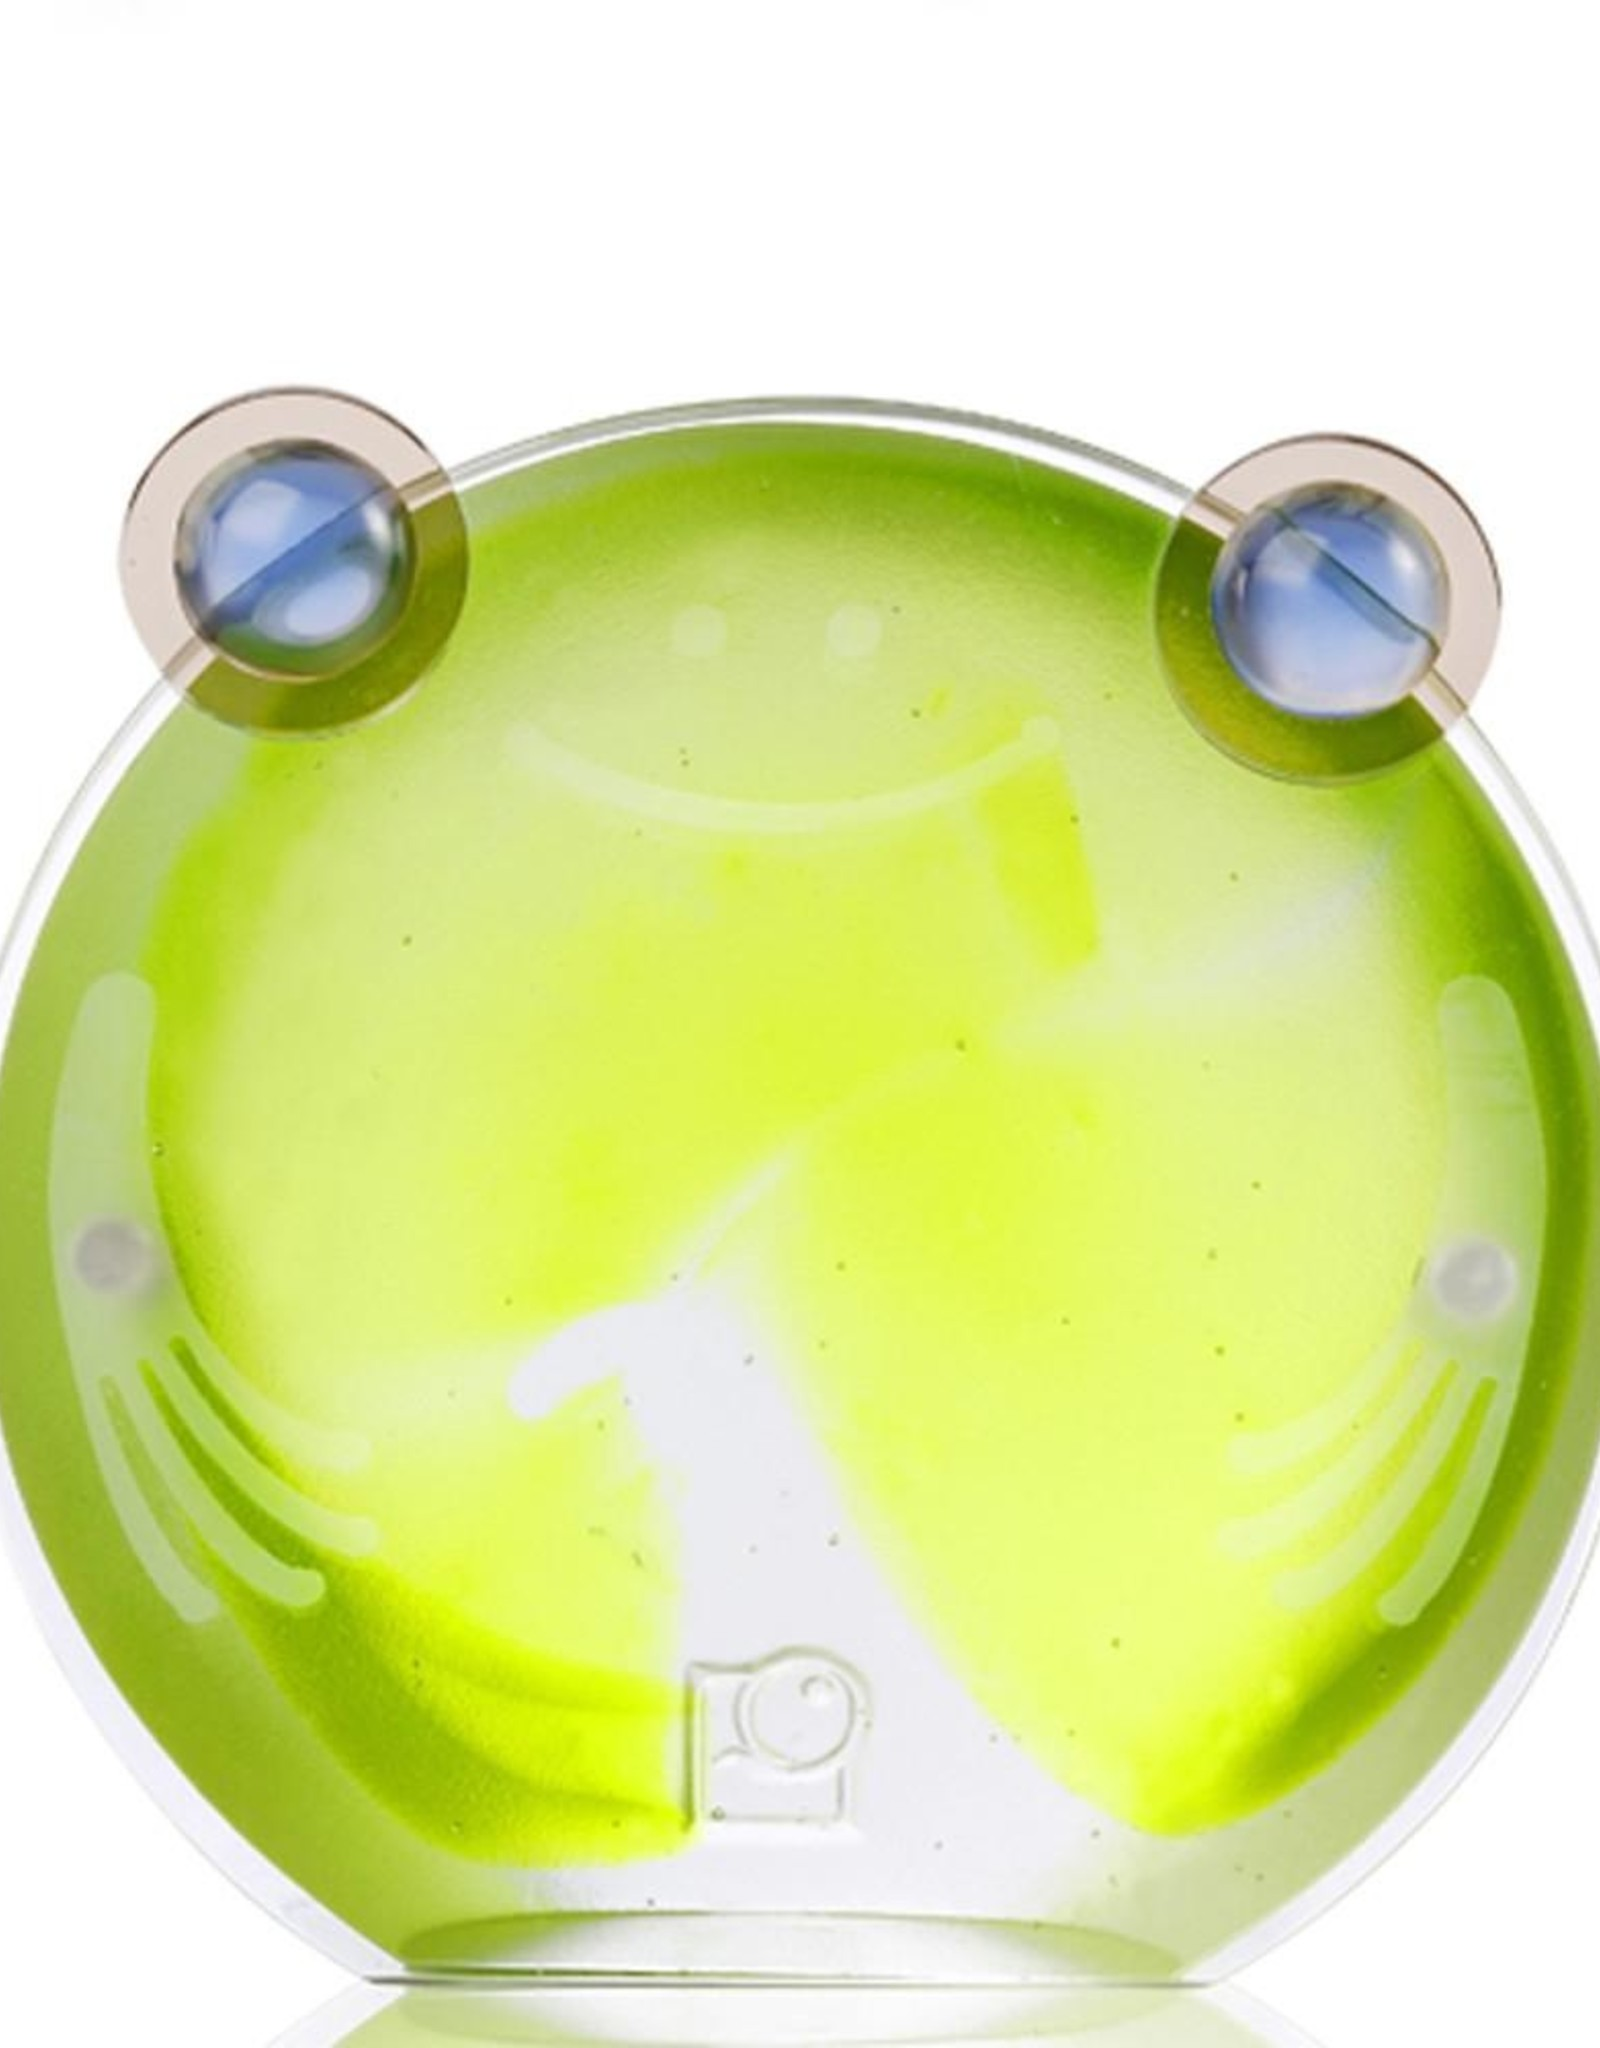 LIULI Crystal Art Crystal Chubby Frog Magnetic Photo Holder, Green Clear